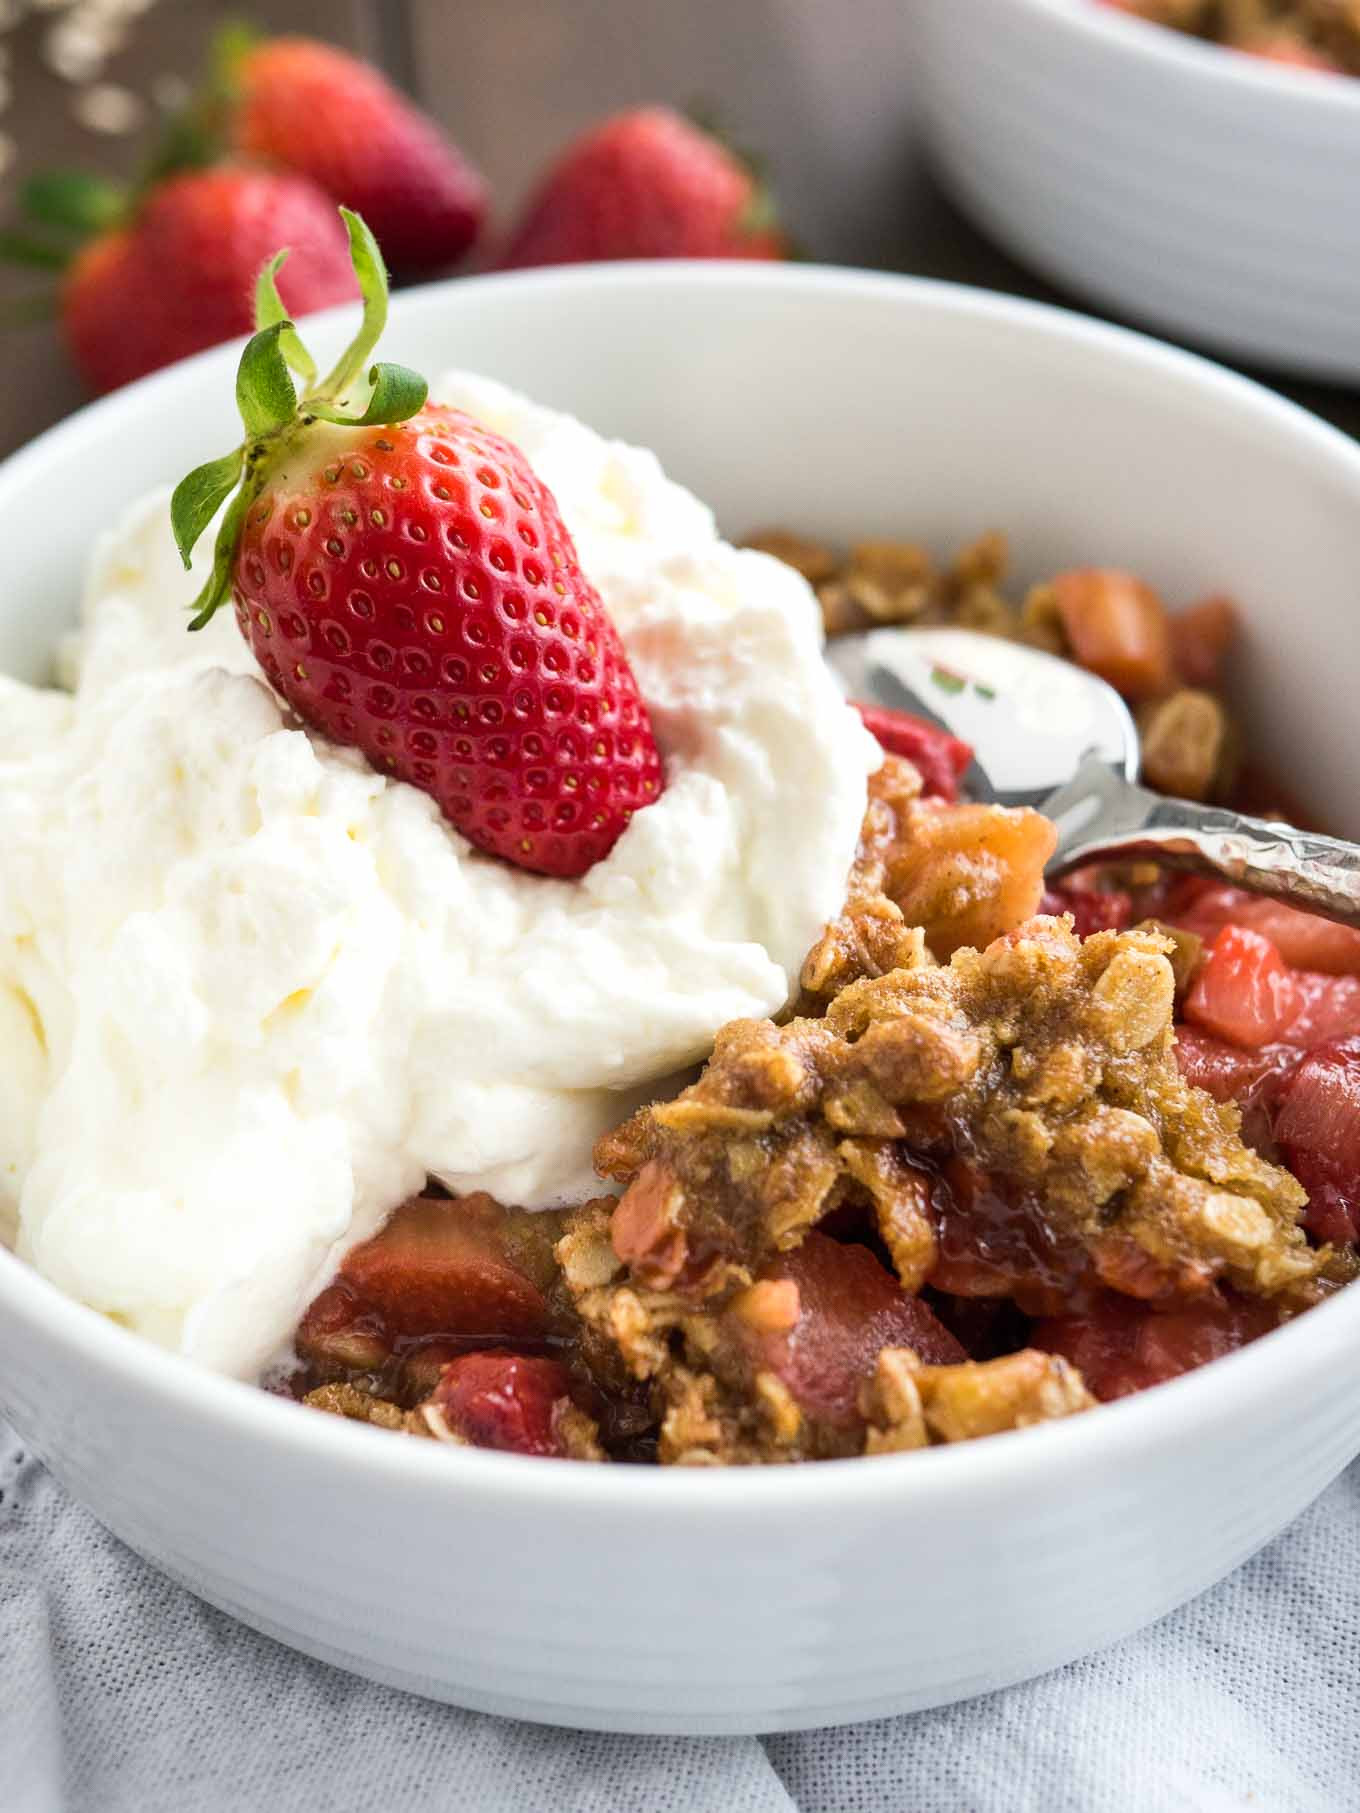 Strawberry Rubarb Dessert  Easy Strawberry Rhubarb Crisp Recipe Prepped in less than